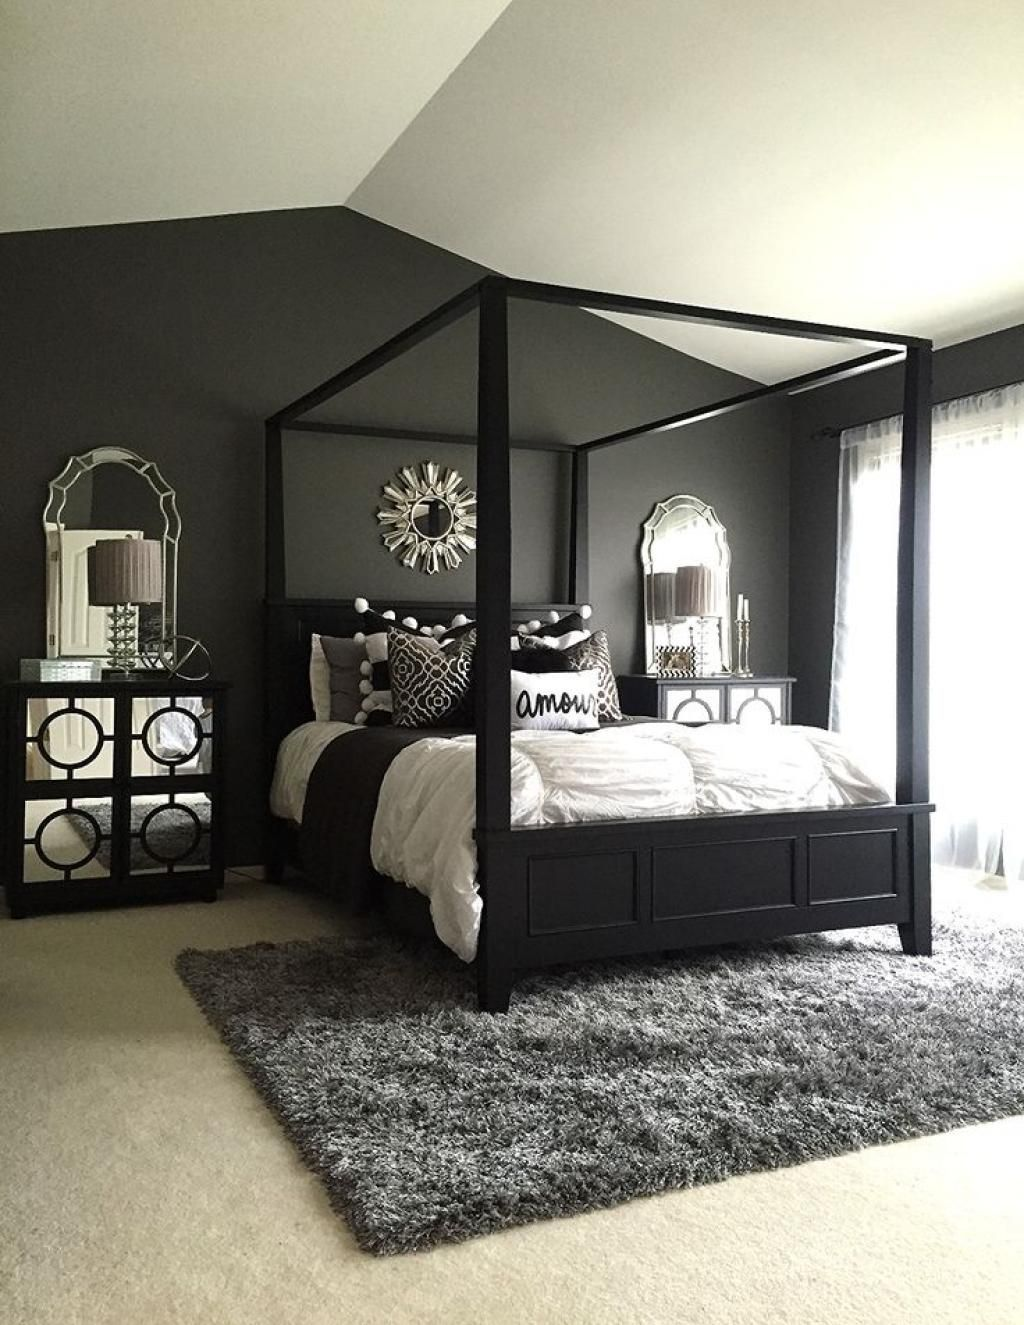 25 Elegant Black Bedroom Decorating Ideas Black Master Bedroom